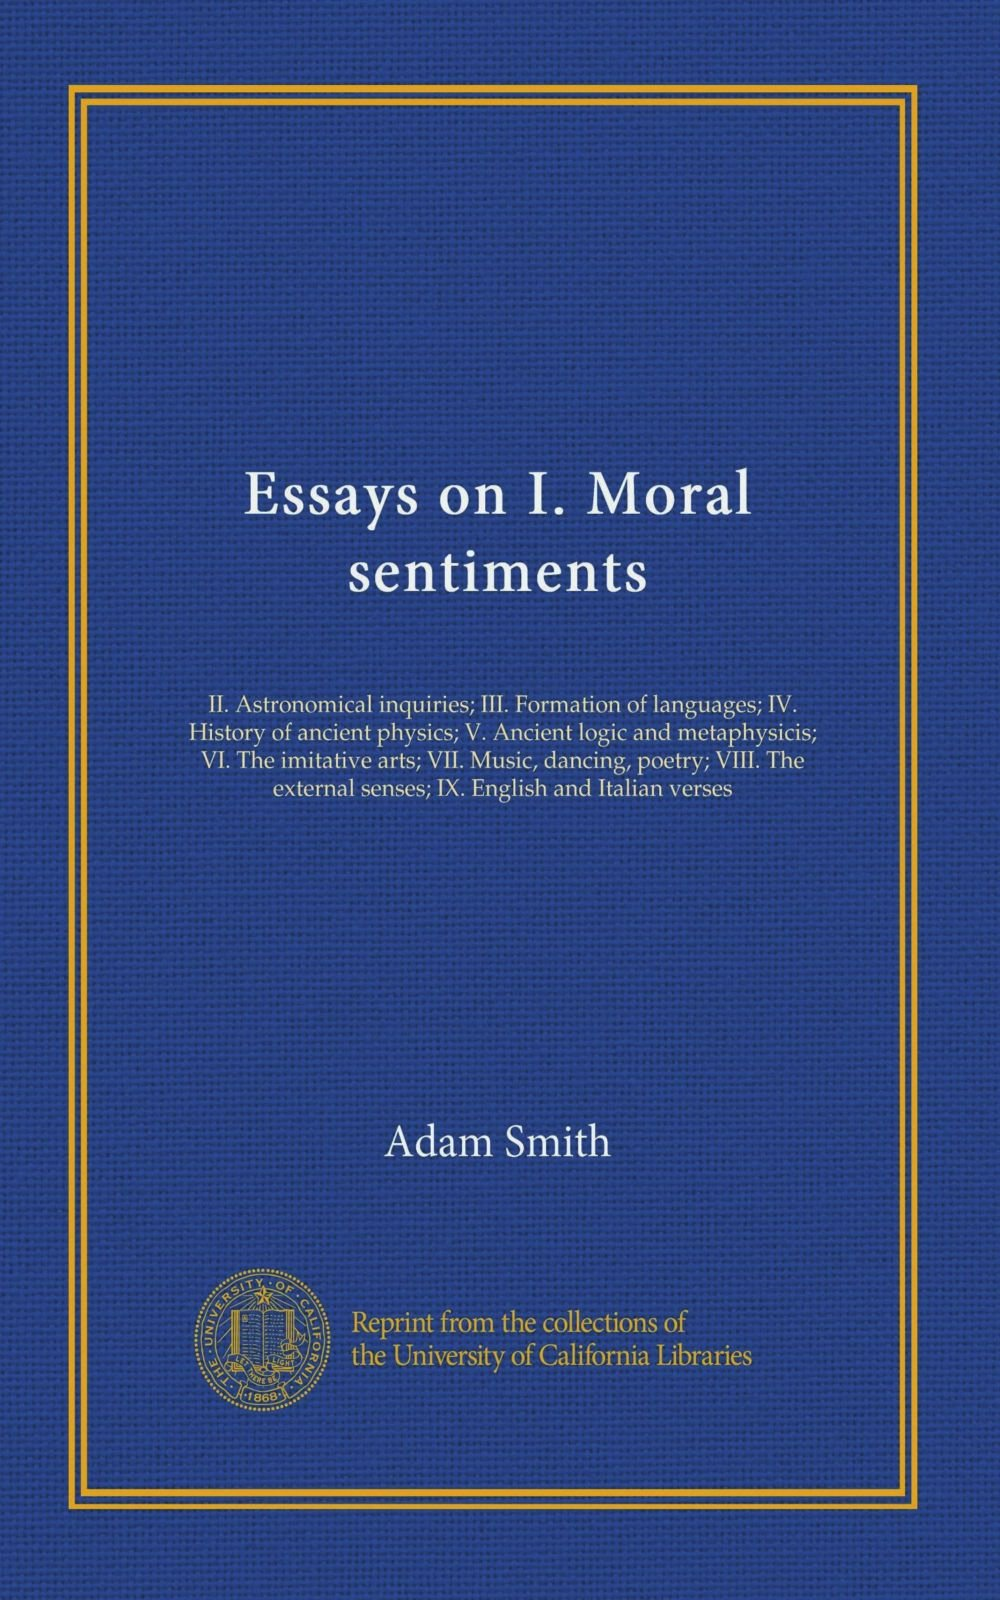 Essays on I. Moral sentiments: II. Astronomical inquiries; III. Formation of languages; IV. History of ancient physics; V. Ancient logic and ... senses; IX. English and Italian verses